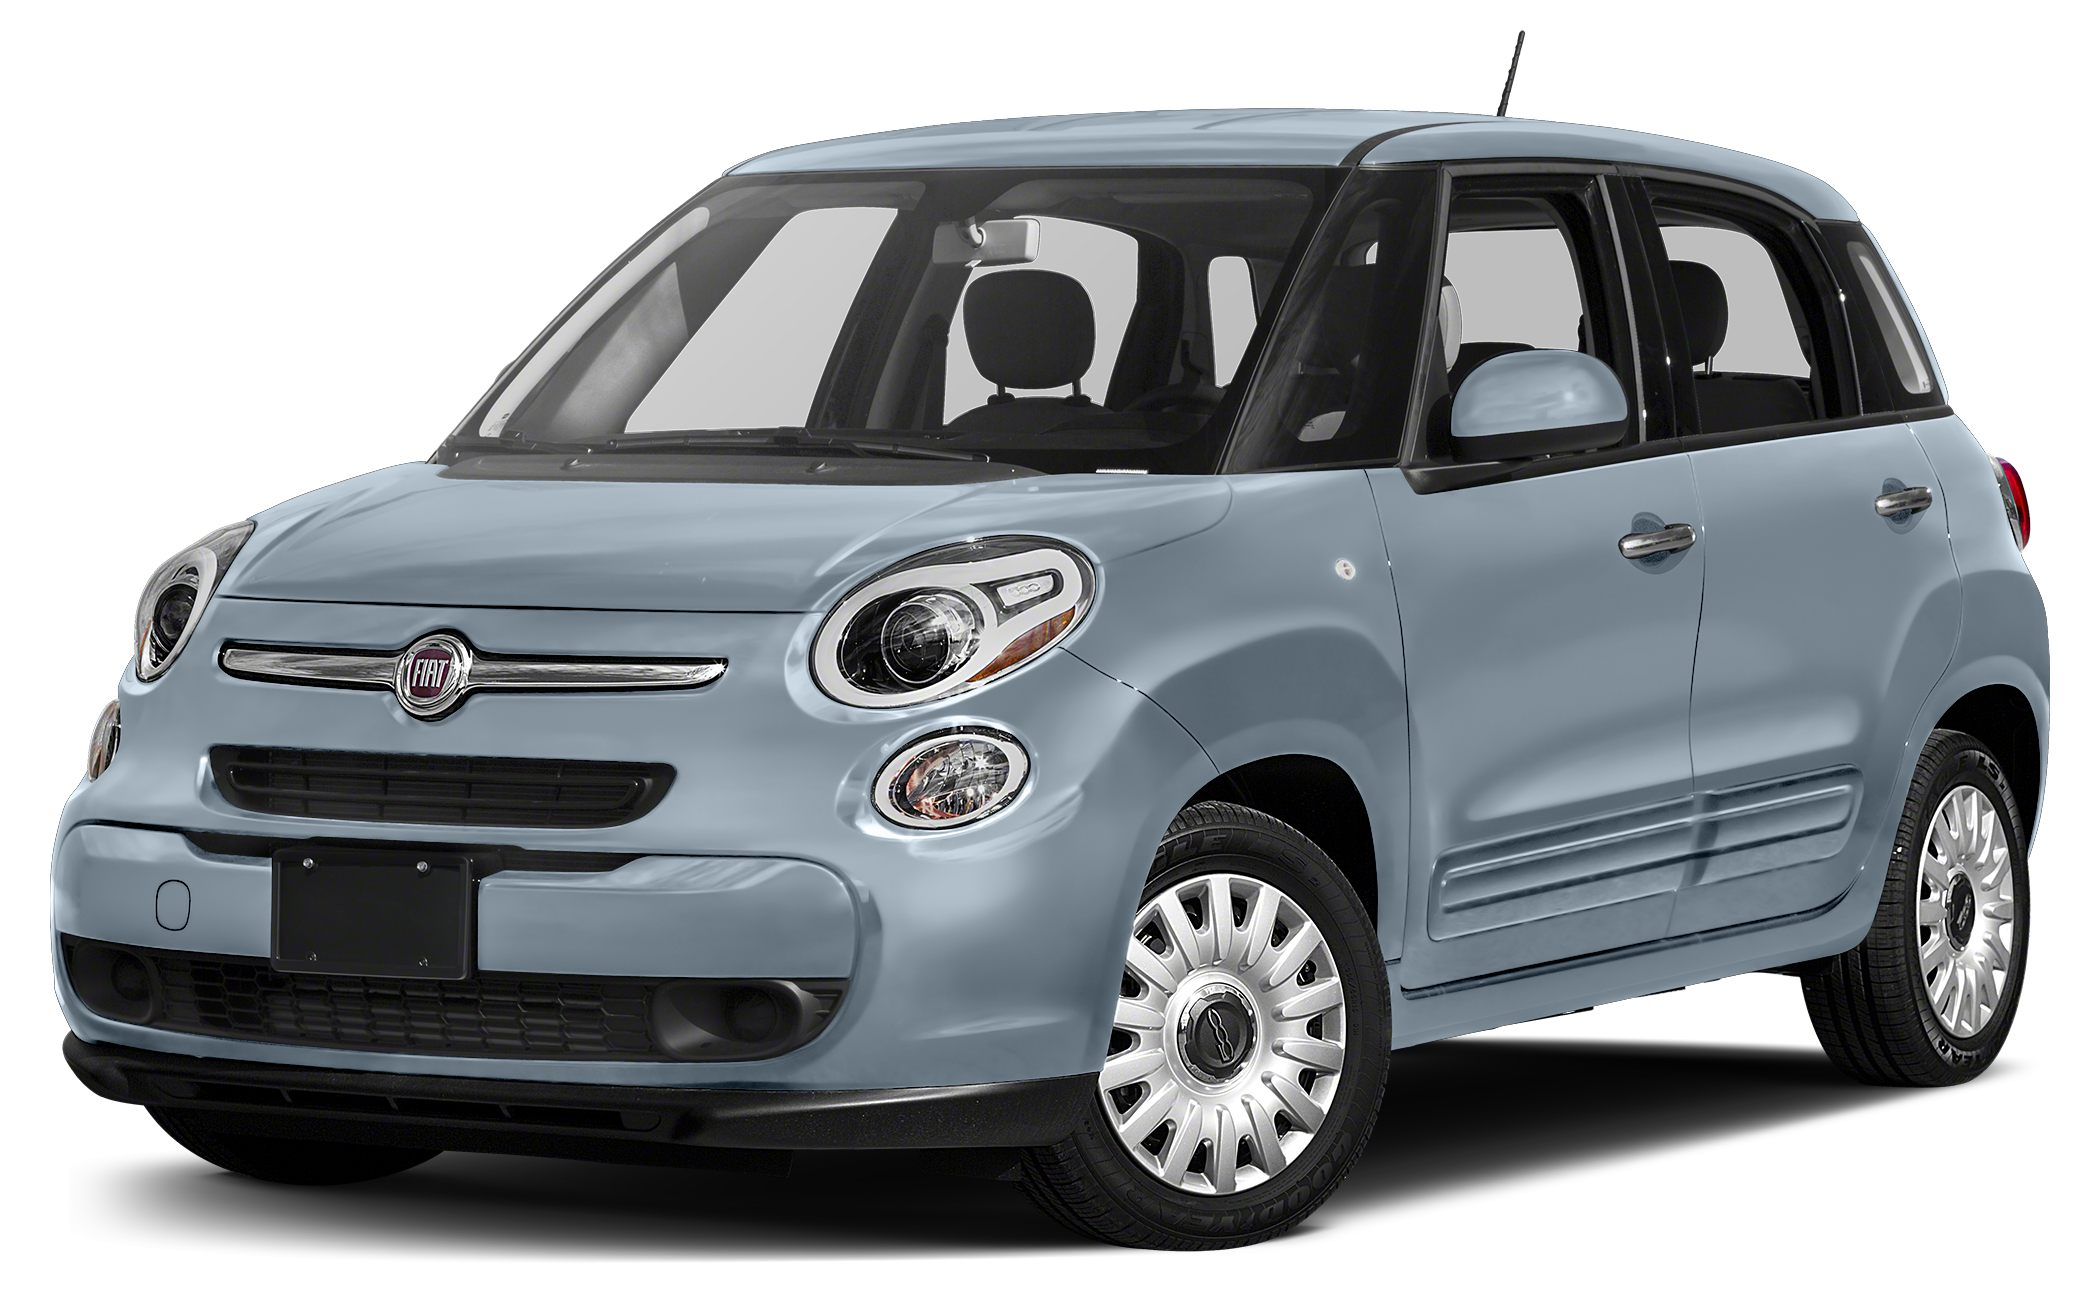 2014 FIAT 500L Easy For Internet Pricing and InformationPlease call Teresa Brown  866-387-3798It